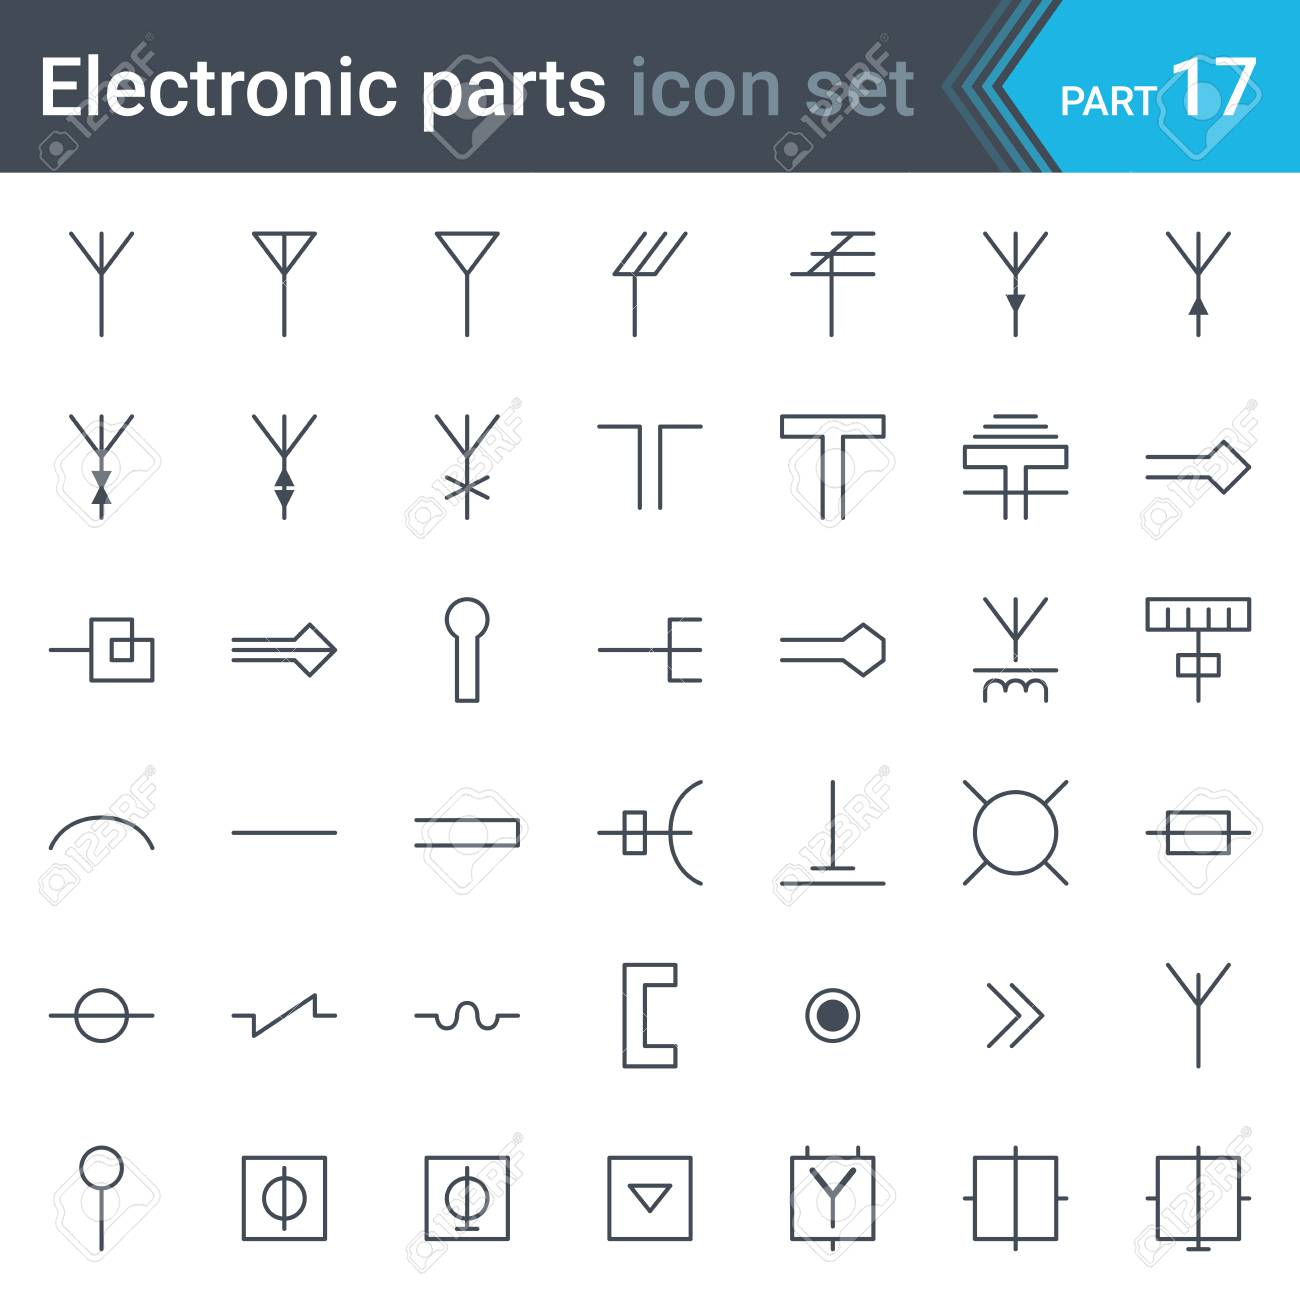 Electric and electronic circuit diagram symbols of antennas electric and electronic circuit diagram symbols of antennas aerials waveguides tv and radio biocorpaavc Gallery